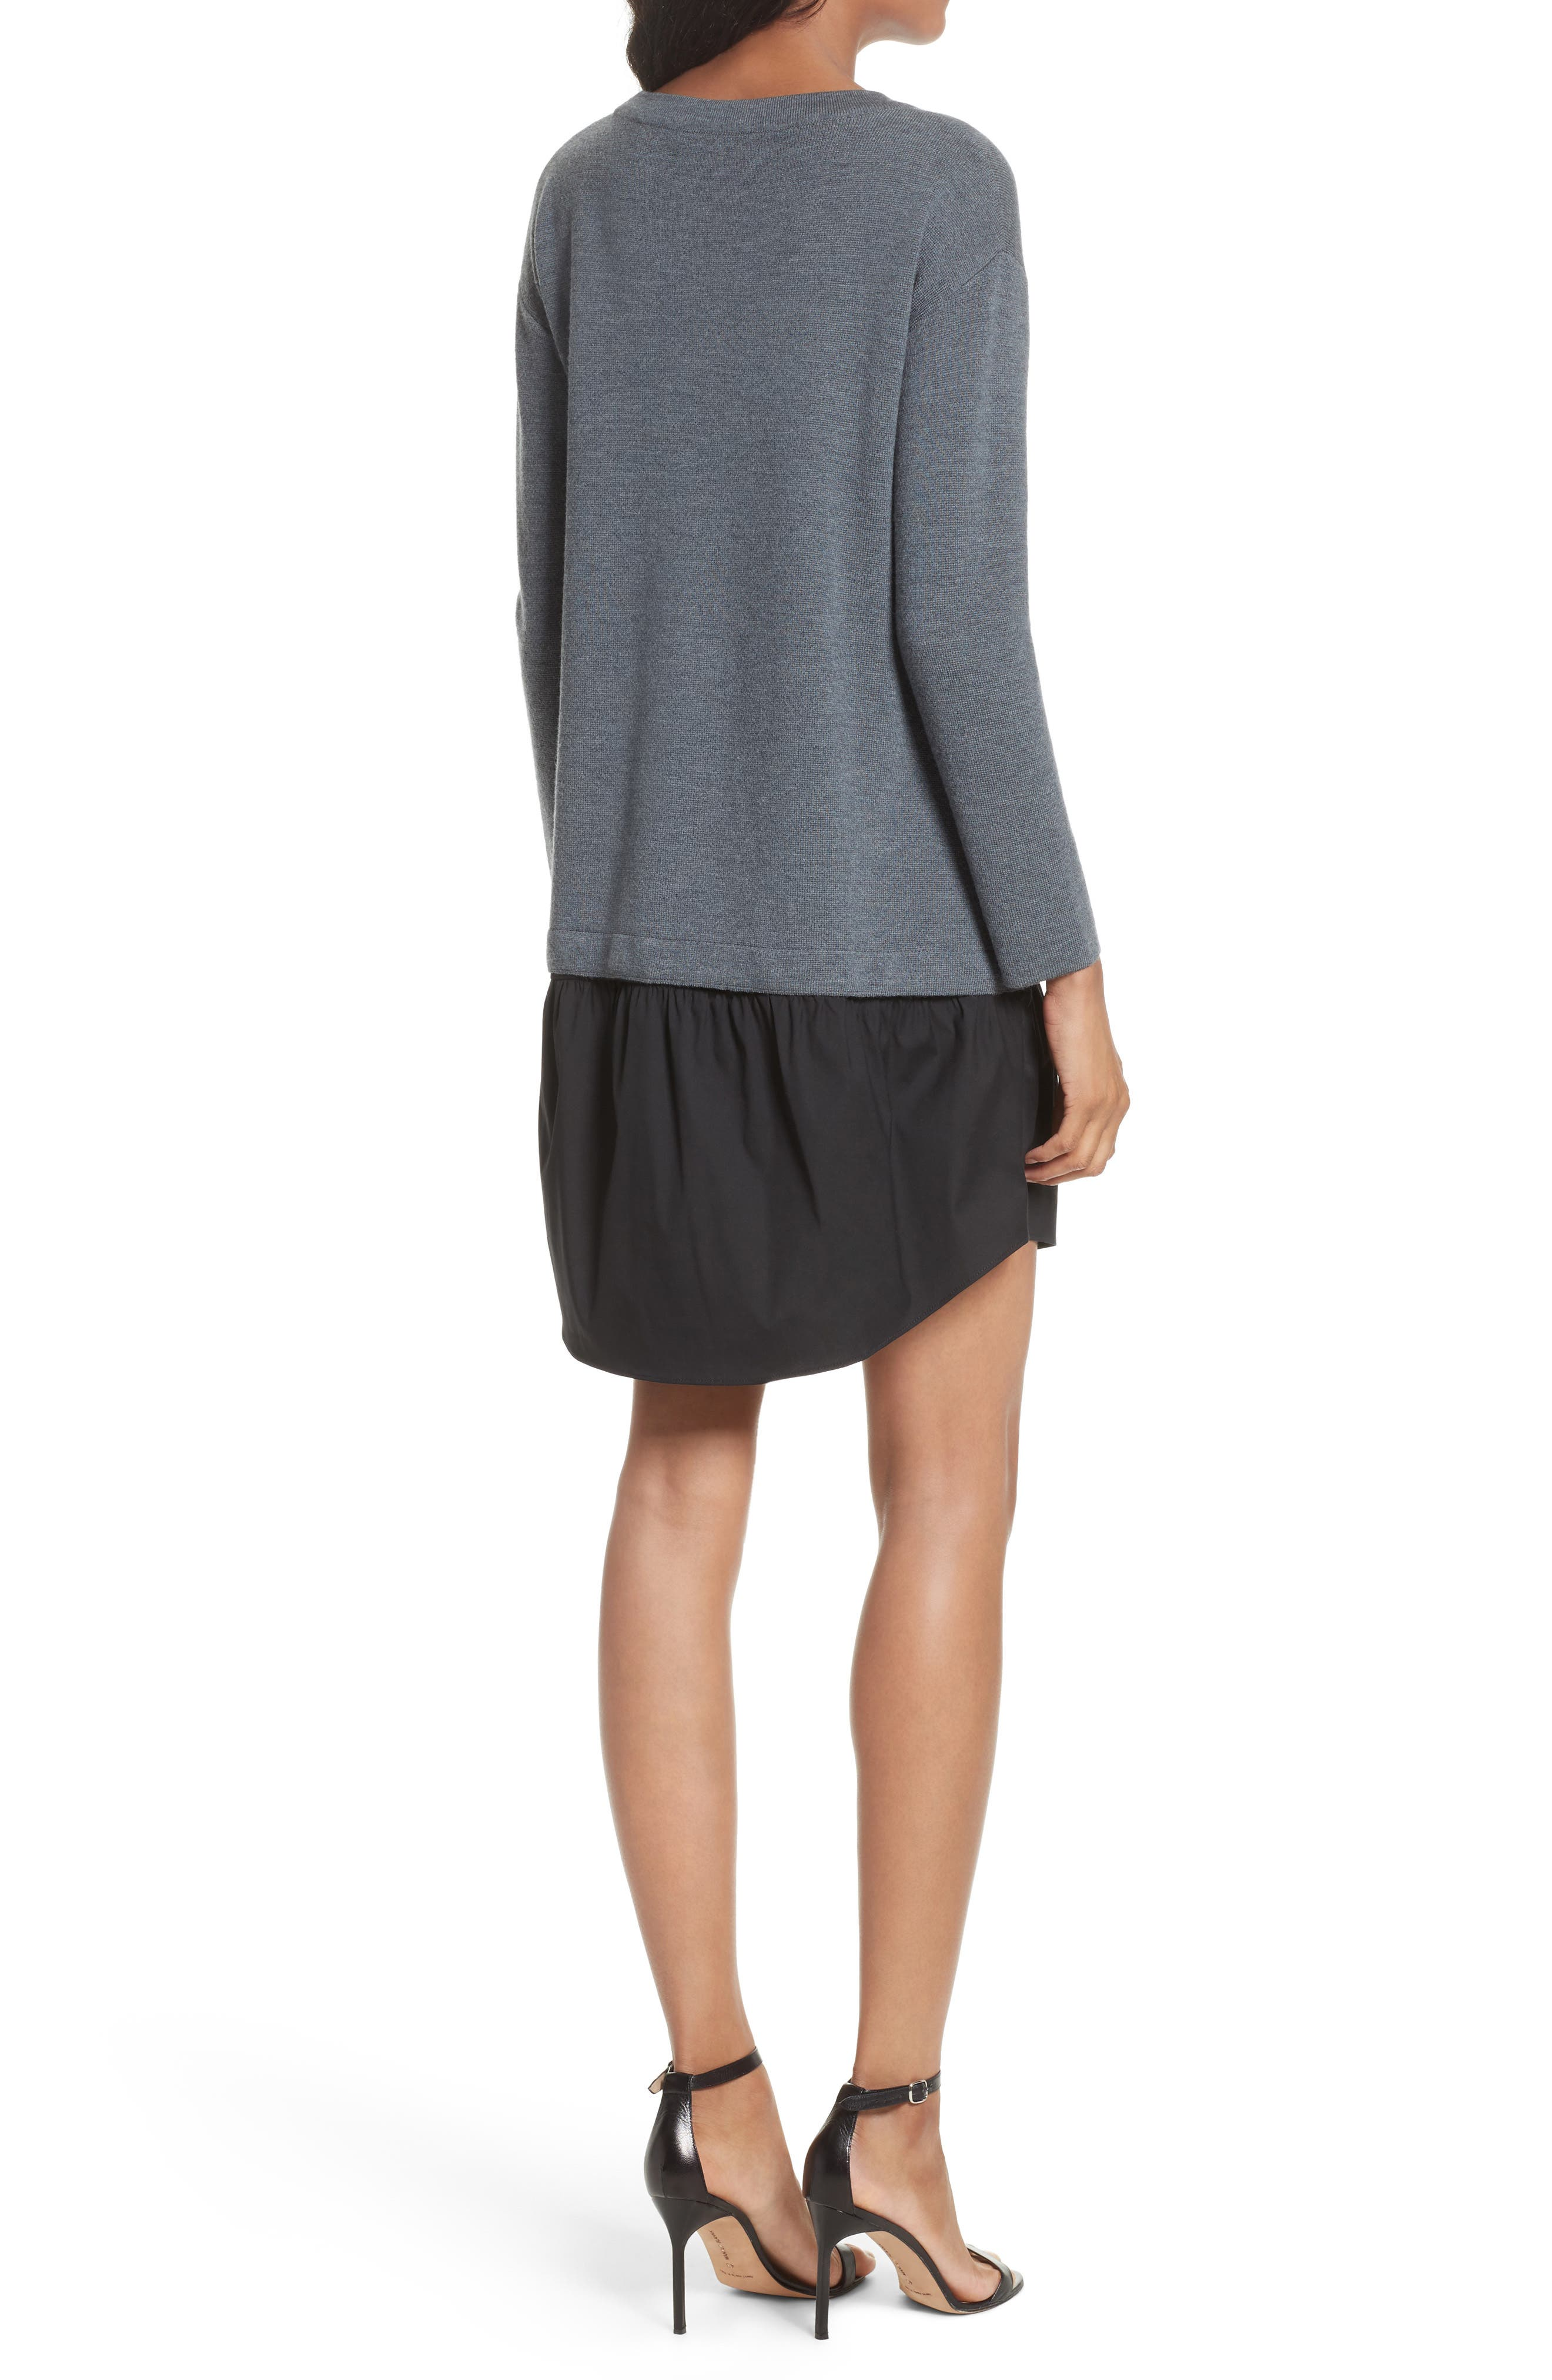 2-in-1 Sweater Dress,                             Alternate thumbnail 2, color,                             Heather Grey